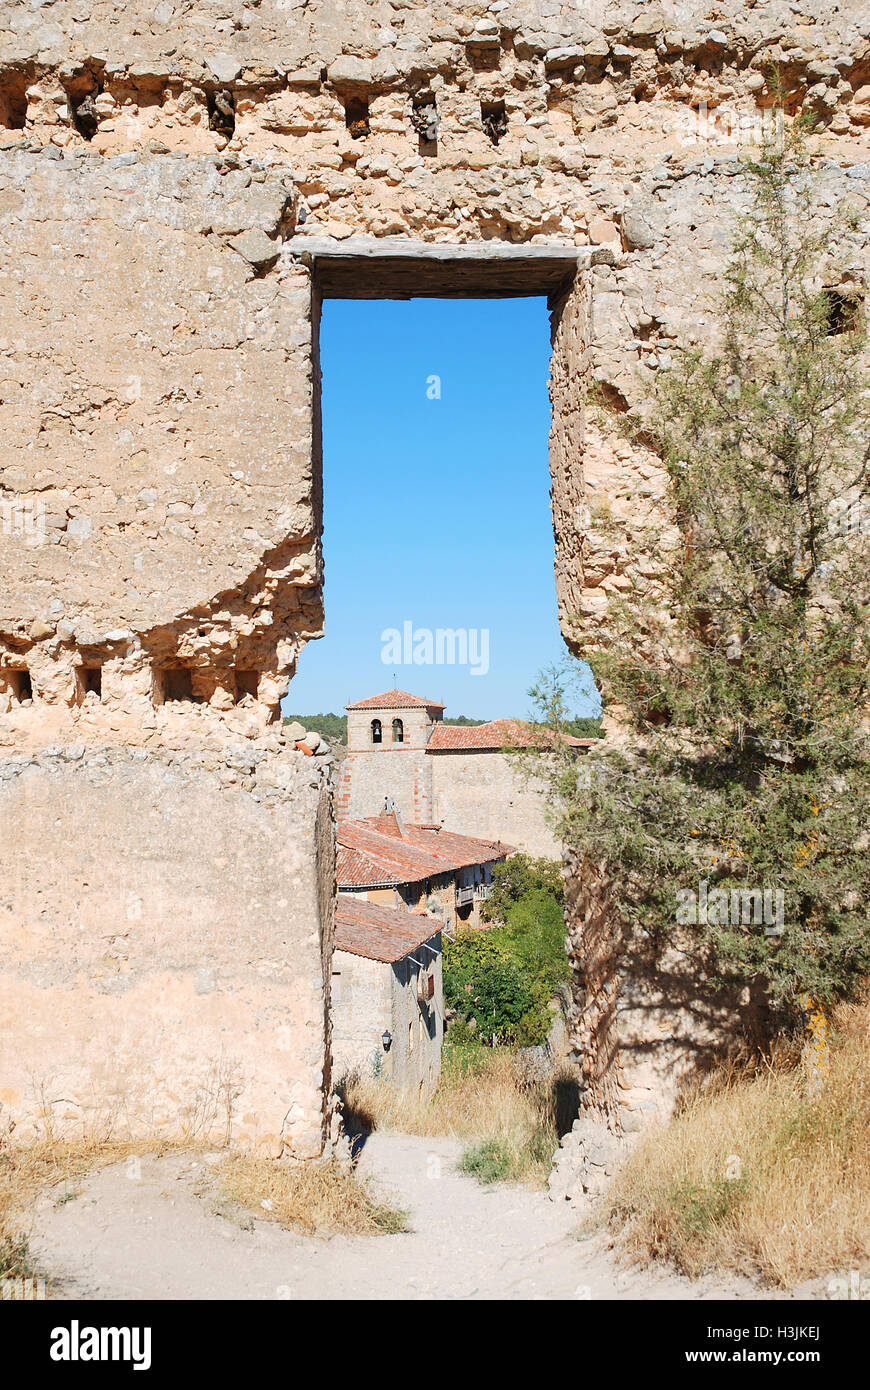 View of the village from the ruins of the castle. Calatañazor, Soria province, Castilla Leon, Spain. Stock Photo